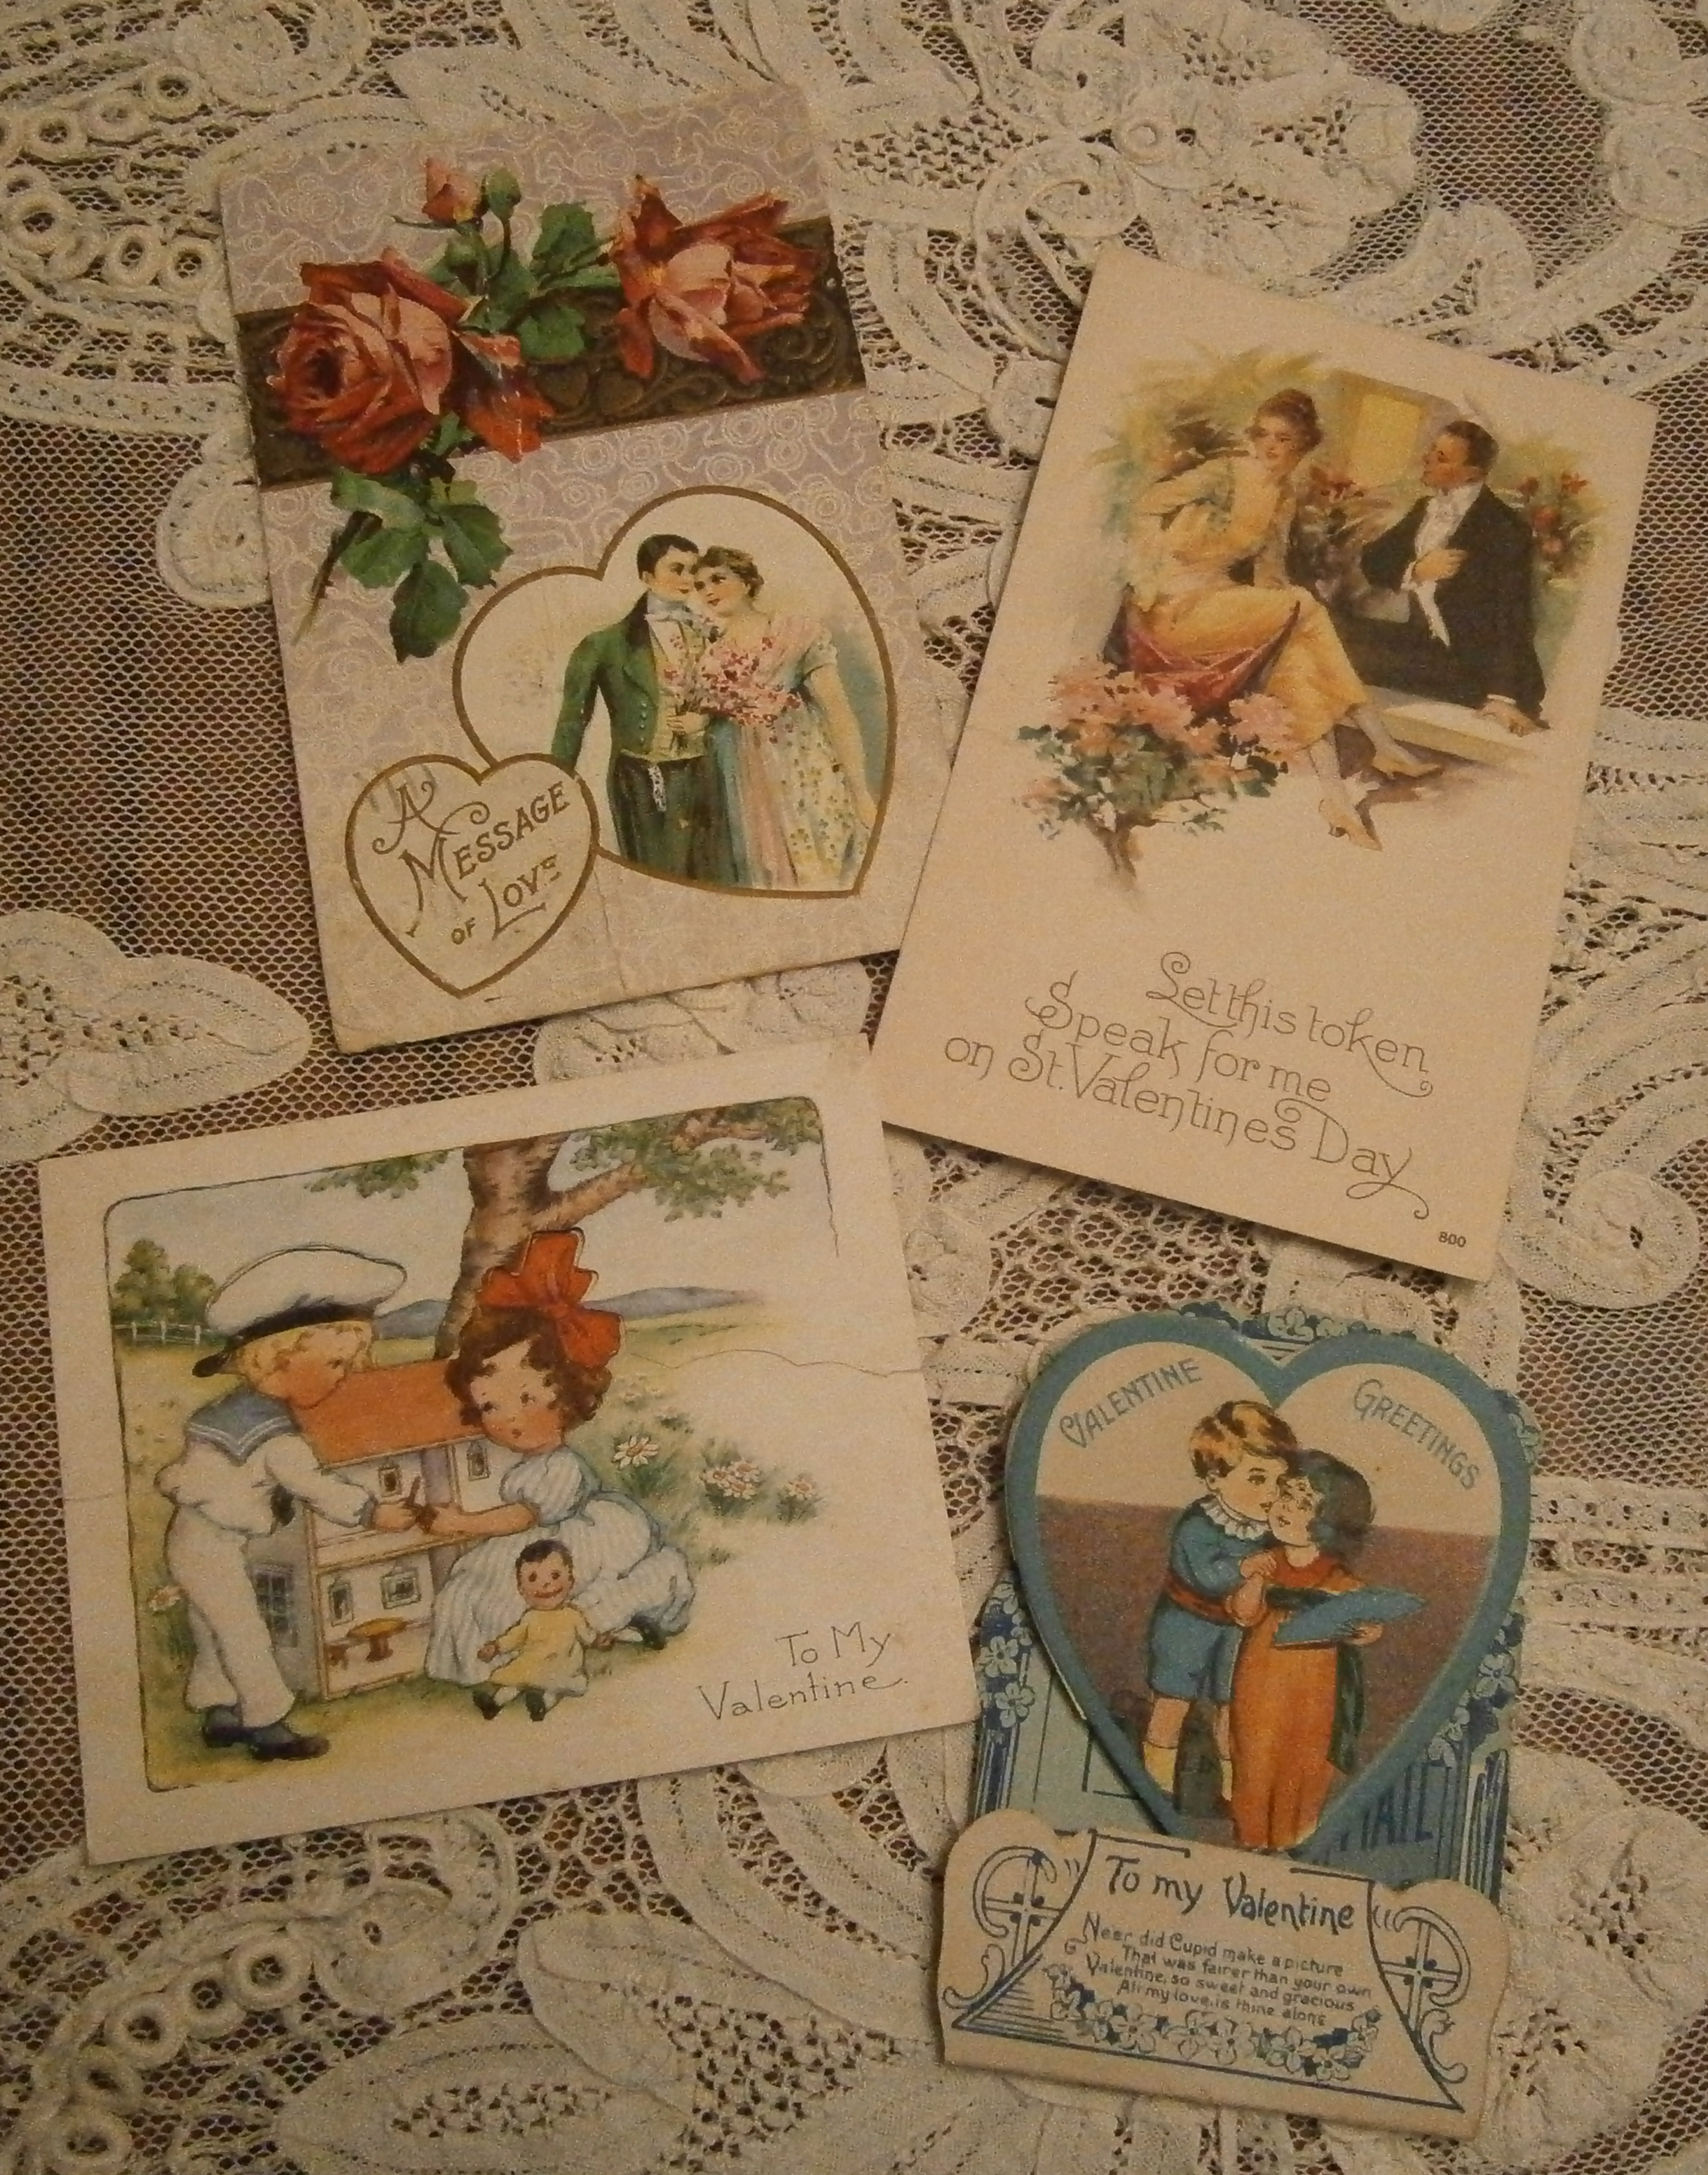 Some Of My Thanksgiving Cards Here Are My Favorite Valentines While Not As Elaborate As Ms Howlands I Love The Way These Cards Speak Of Romance